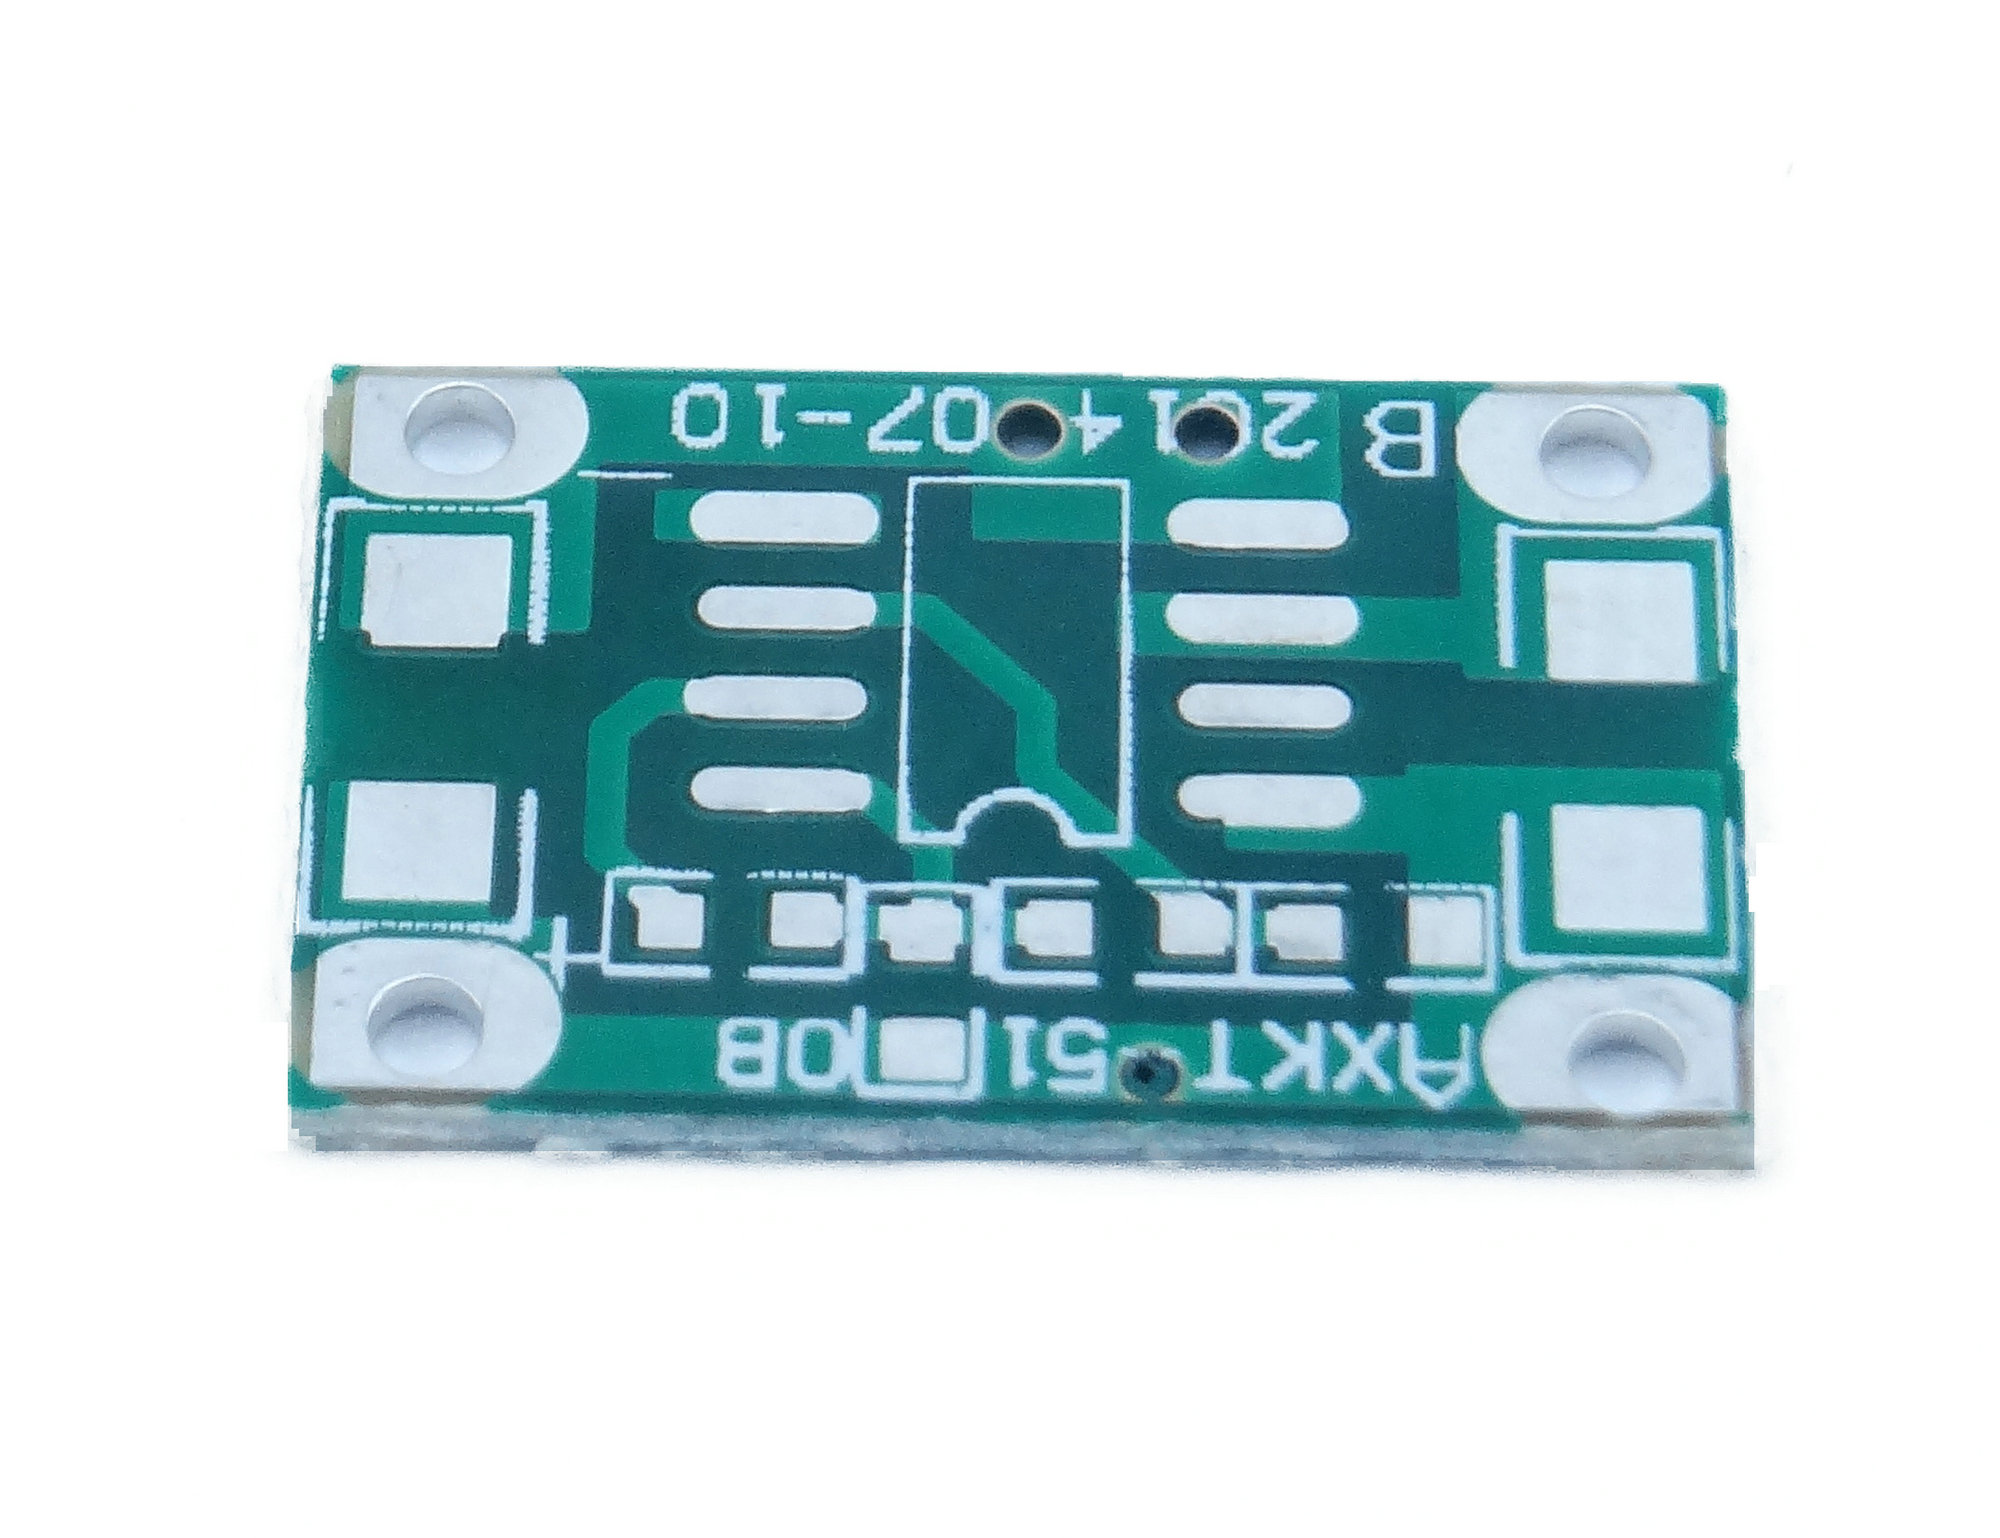 510 single chip series wireless charging power supply module circuit diagram pcb circuit board test board in instrument parts accessories from tools on  [ 2000 x 1538 Pixel ]